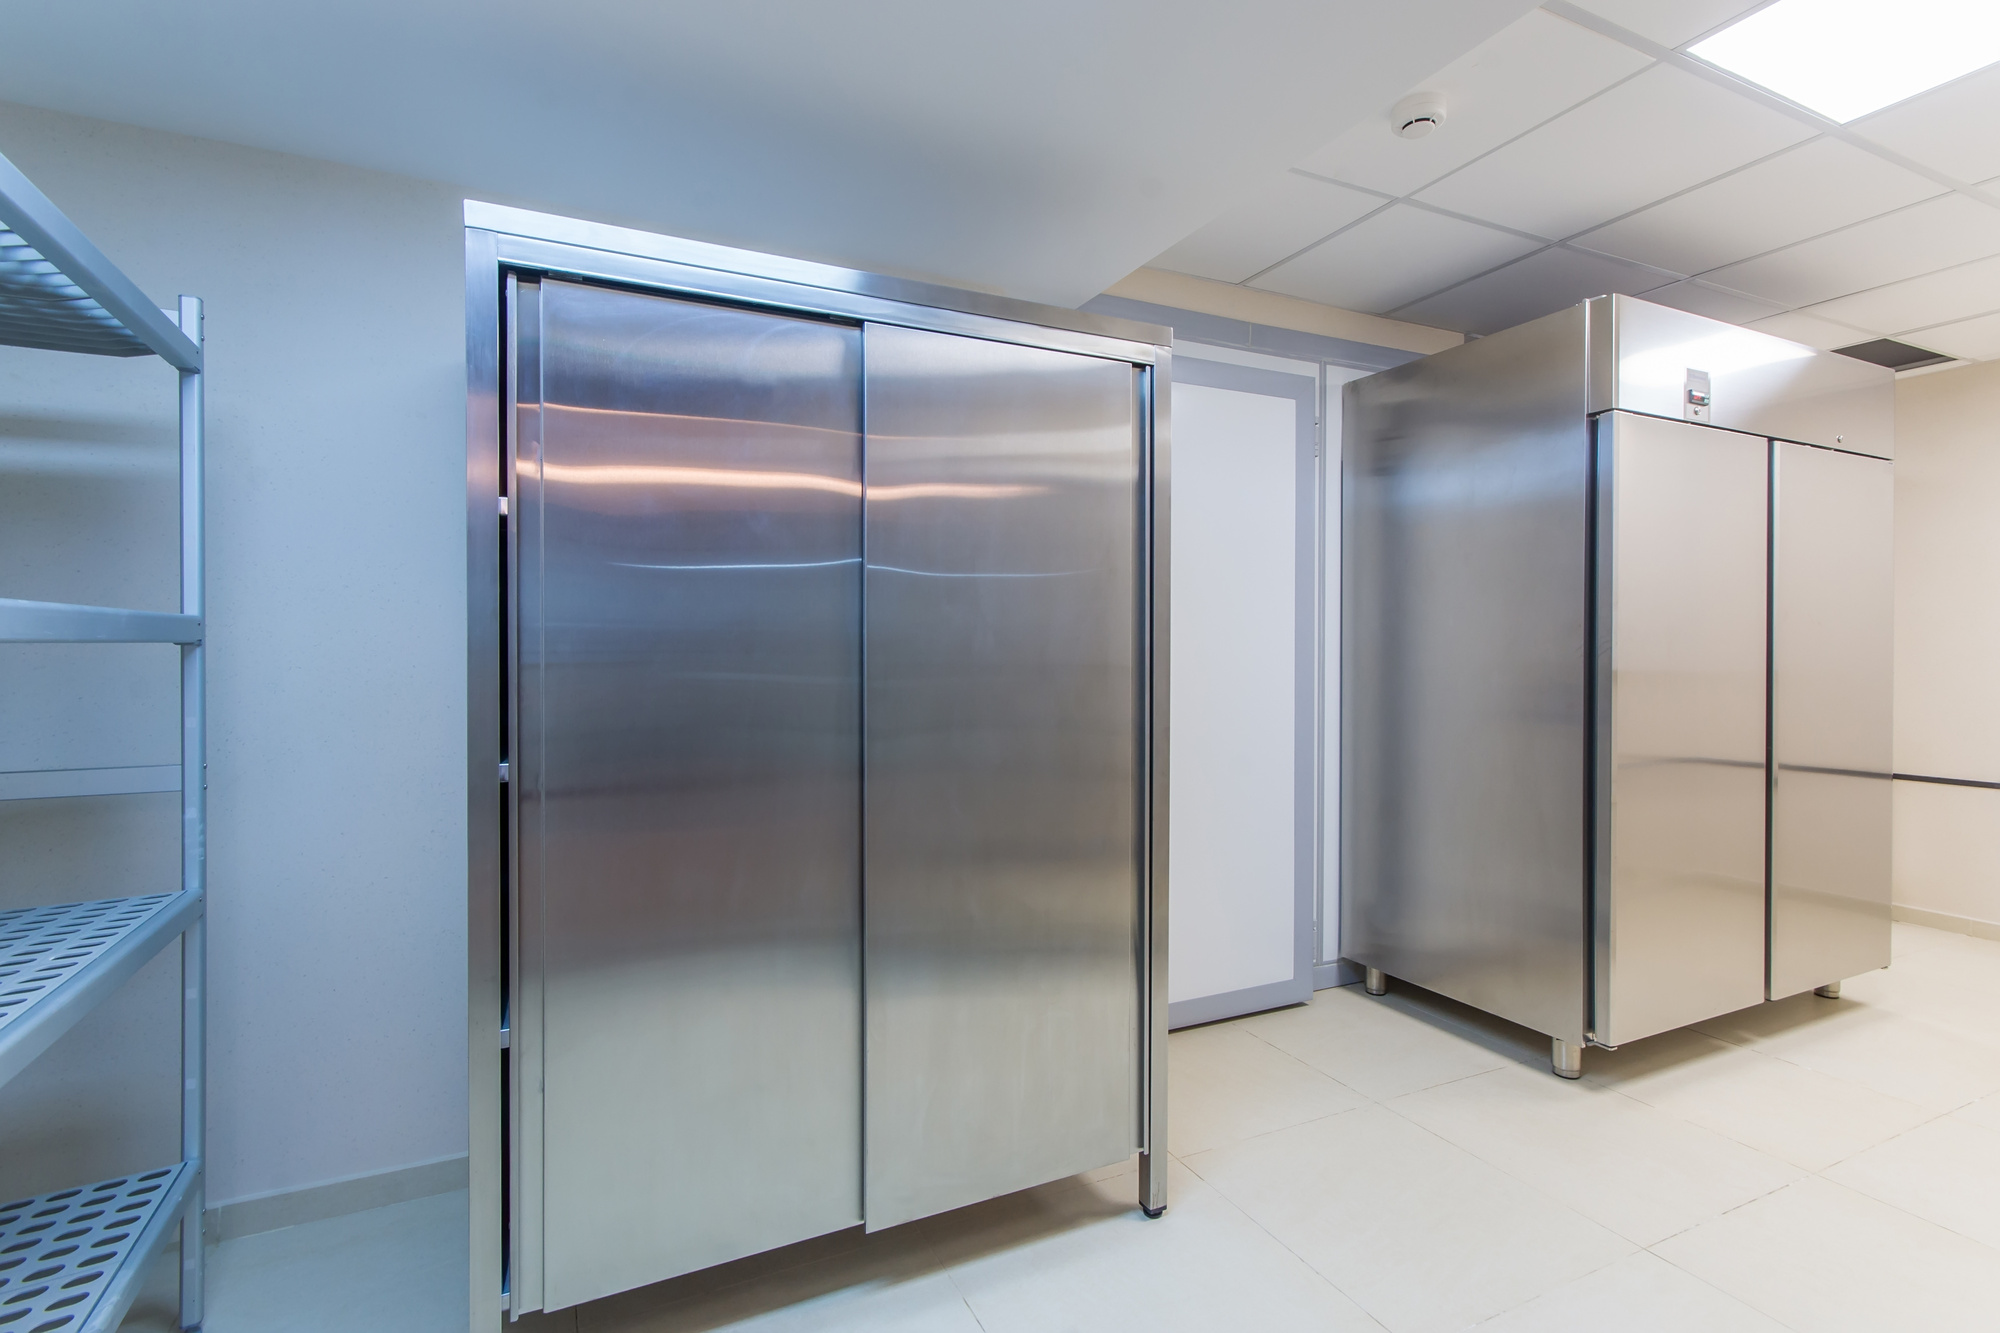 Top 5 Signs It's Time to Replace Your Commercial Refrigerator |